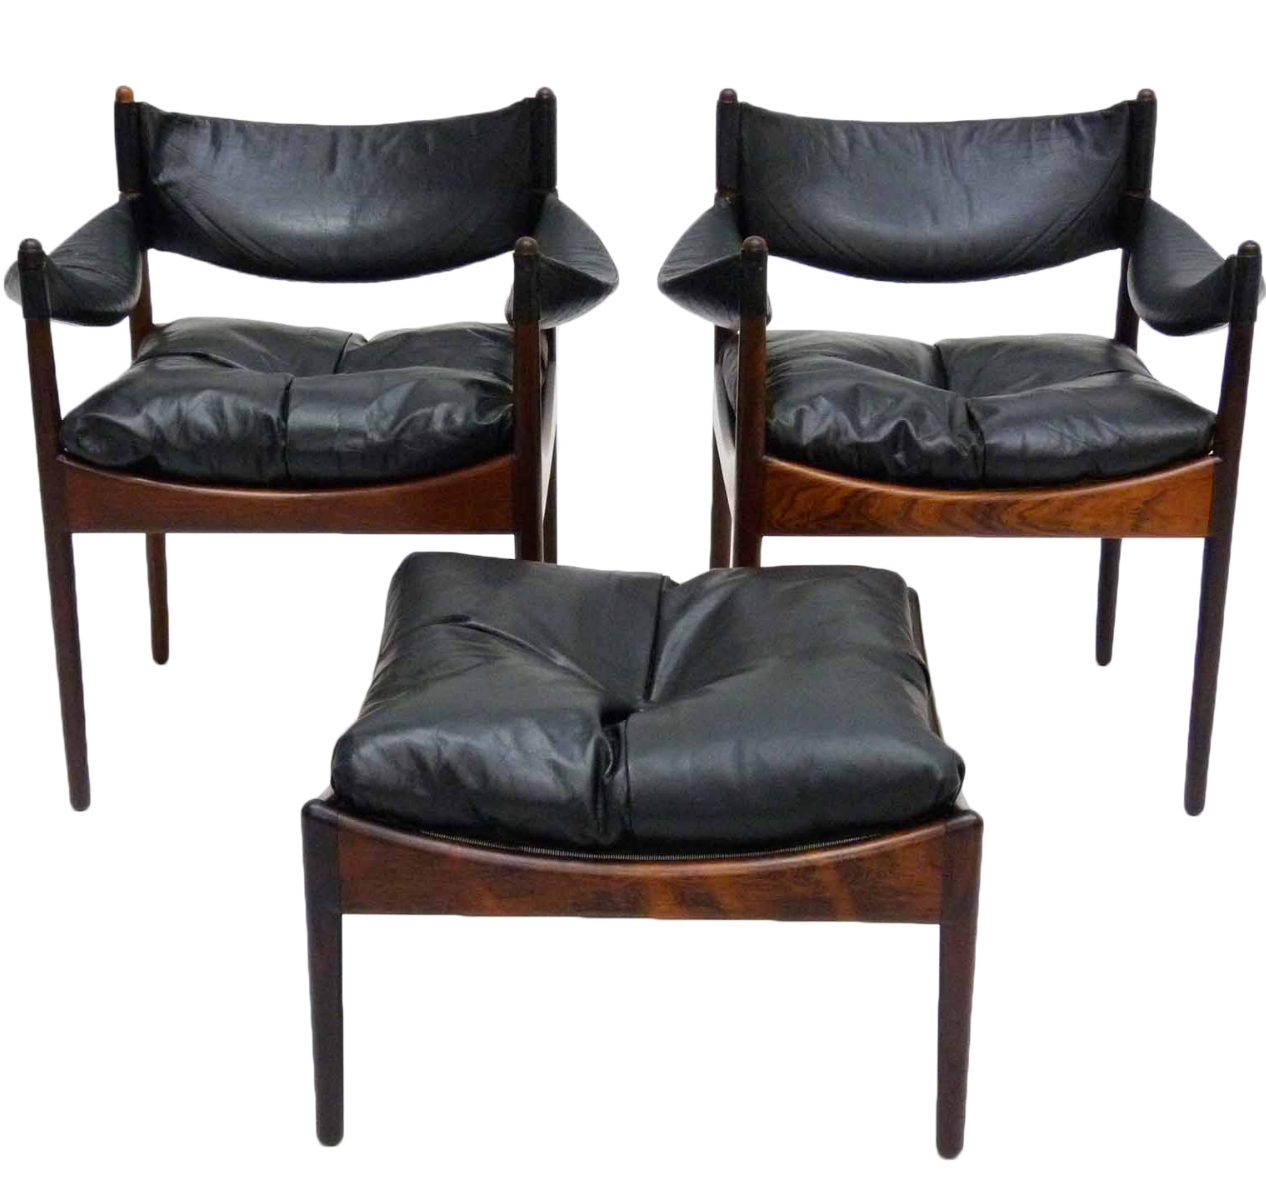 Kristian Vedel Quot Modus Quot Chairs Amp Ottoman Set Of 3 Chairish